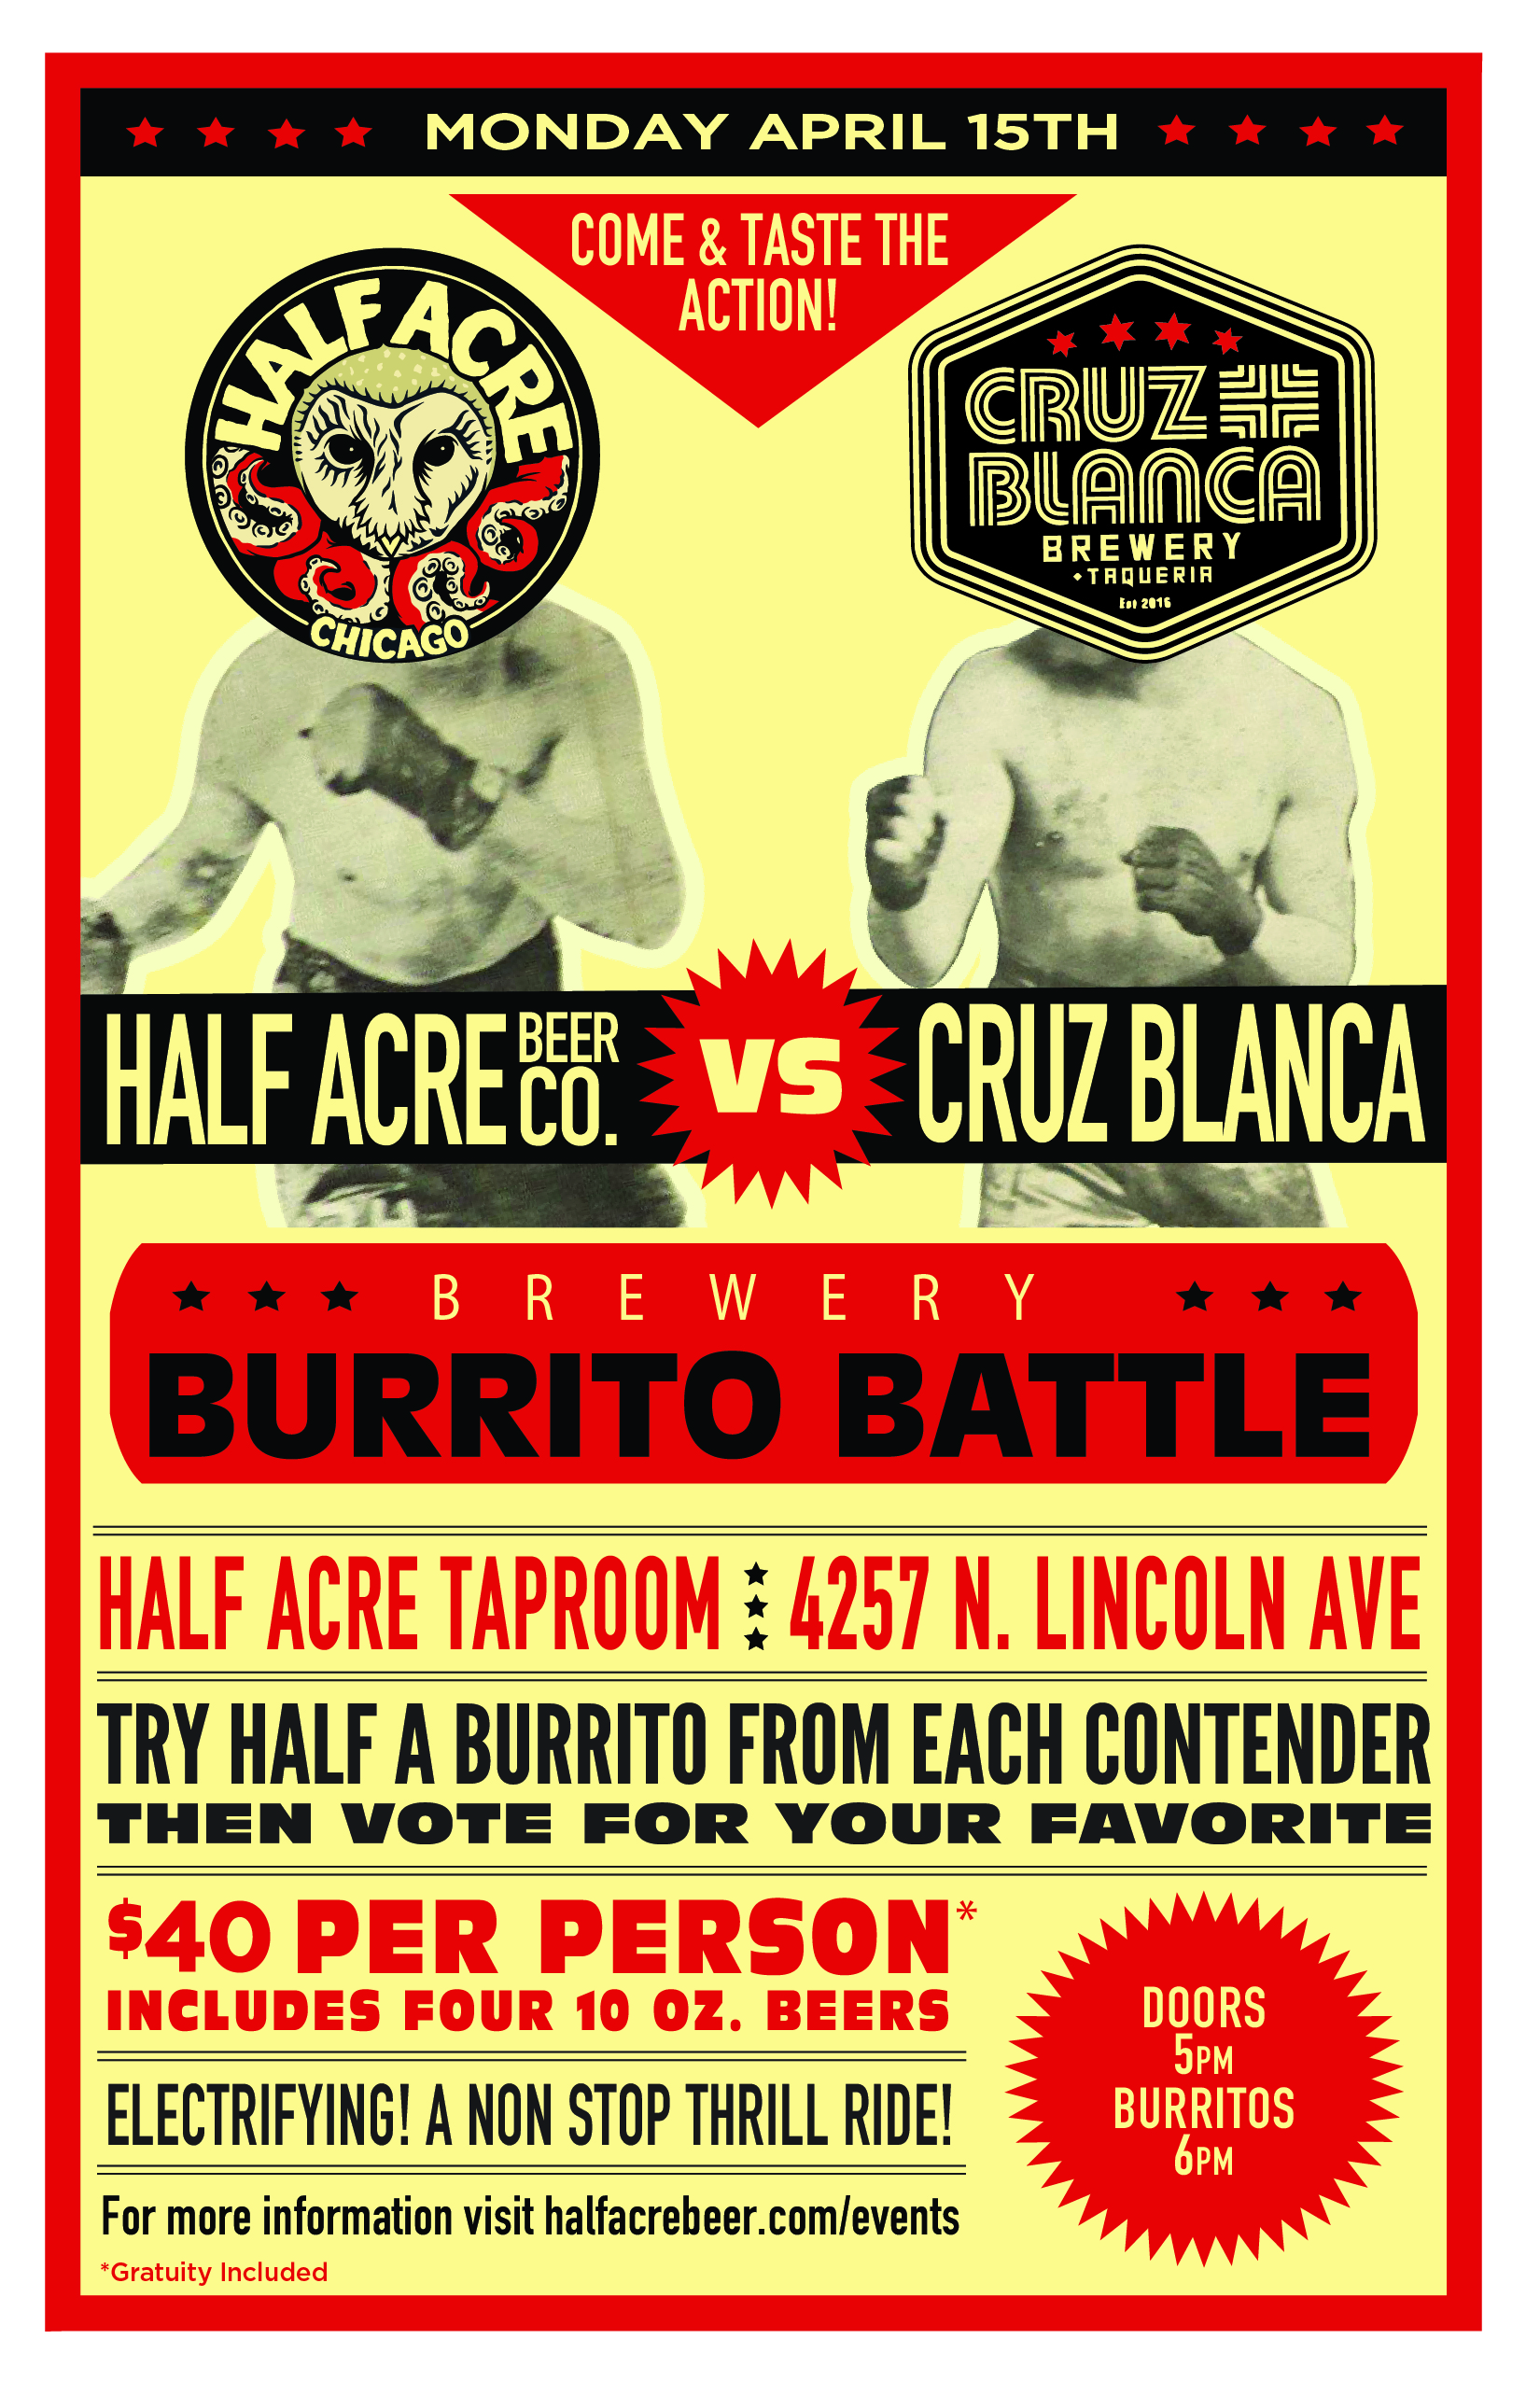 CRUZ_Burrito_Battle_2019_FINAL-01.jpg